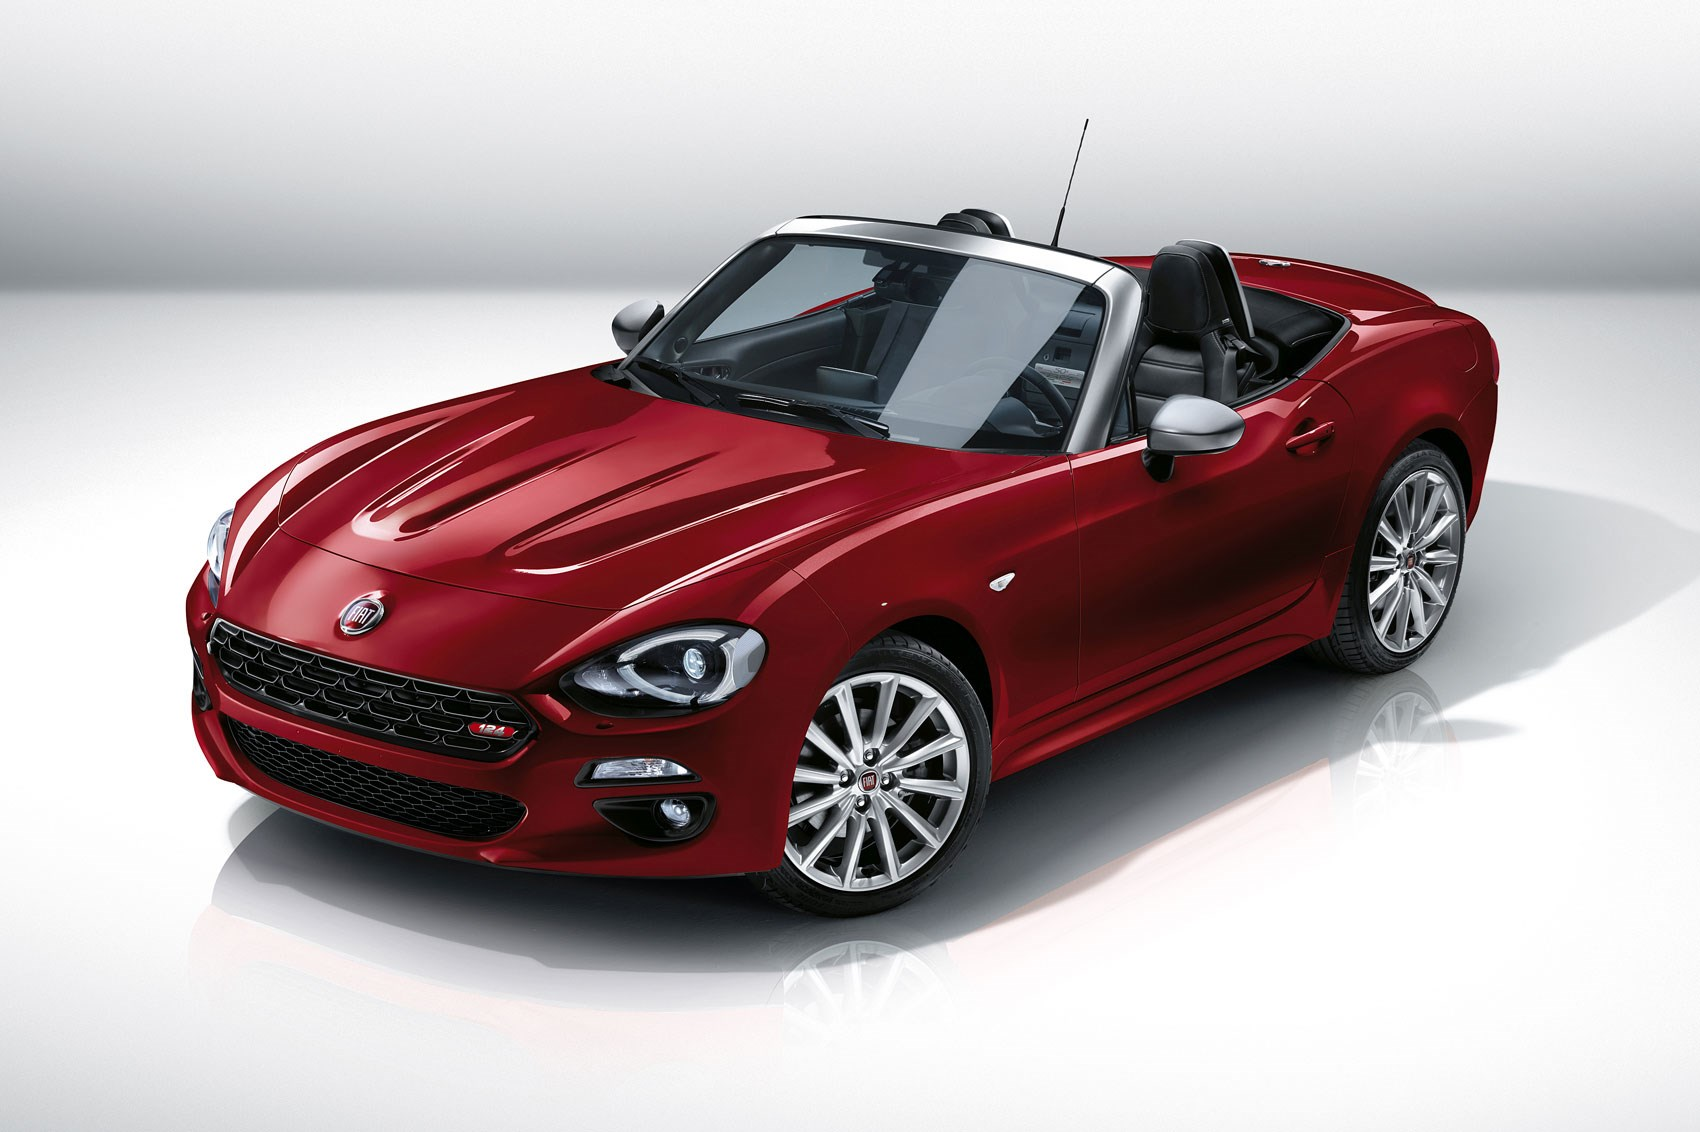 Fiat 124 Spider revealed at 2015 LA show: Fiat's MX5 turbo is here